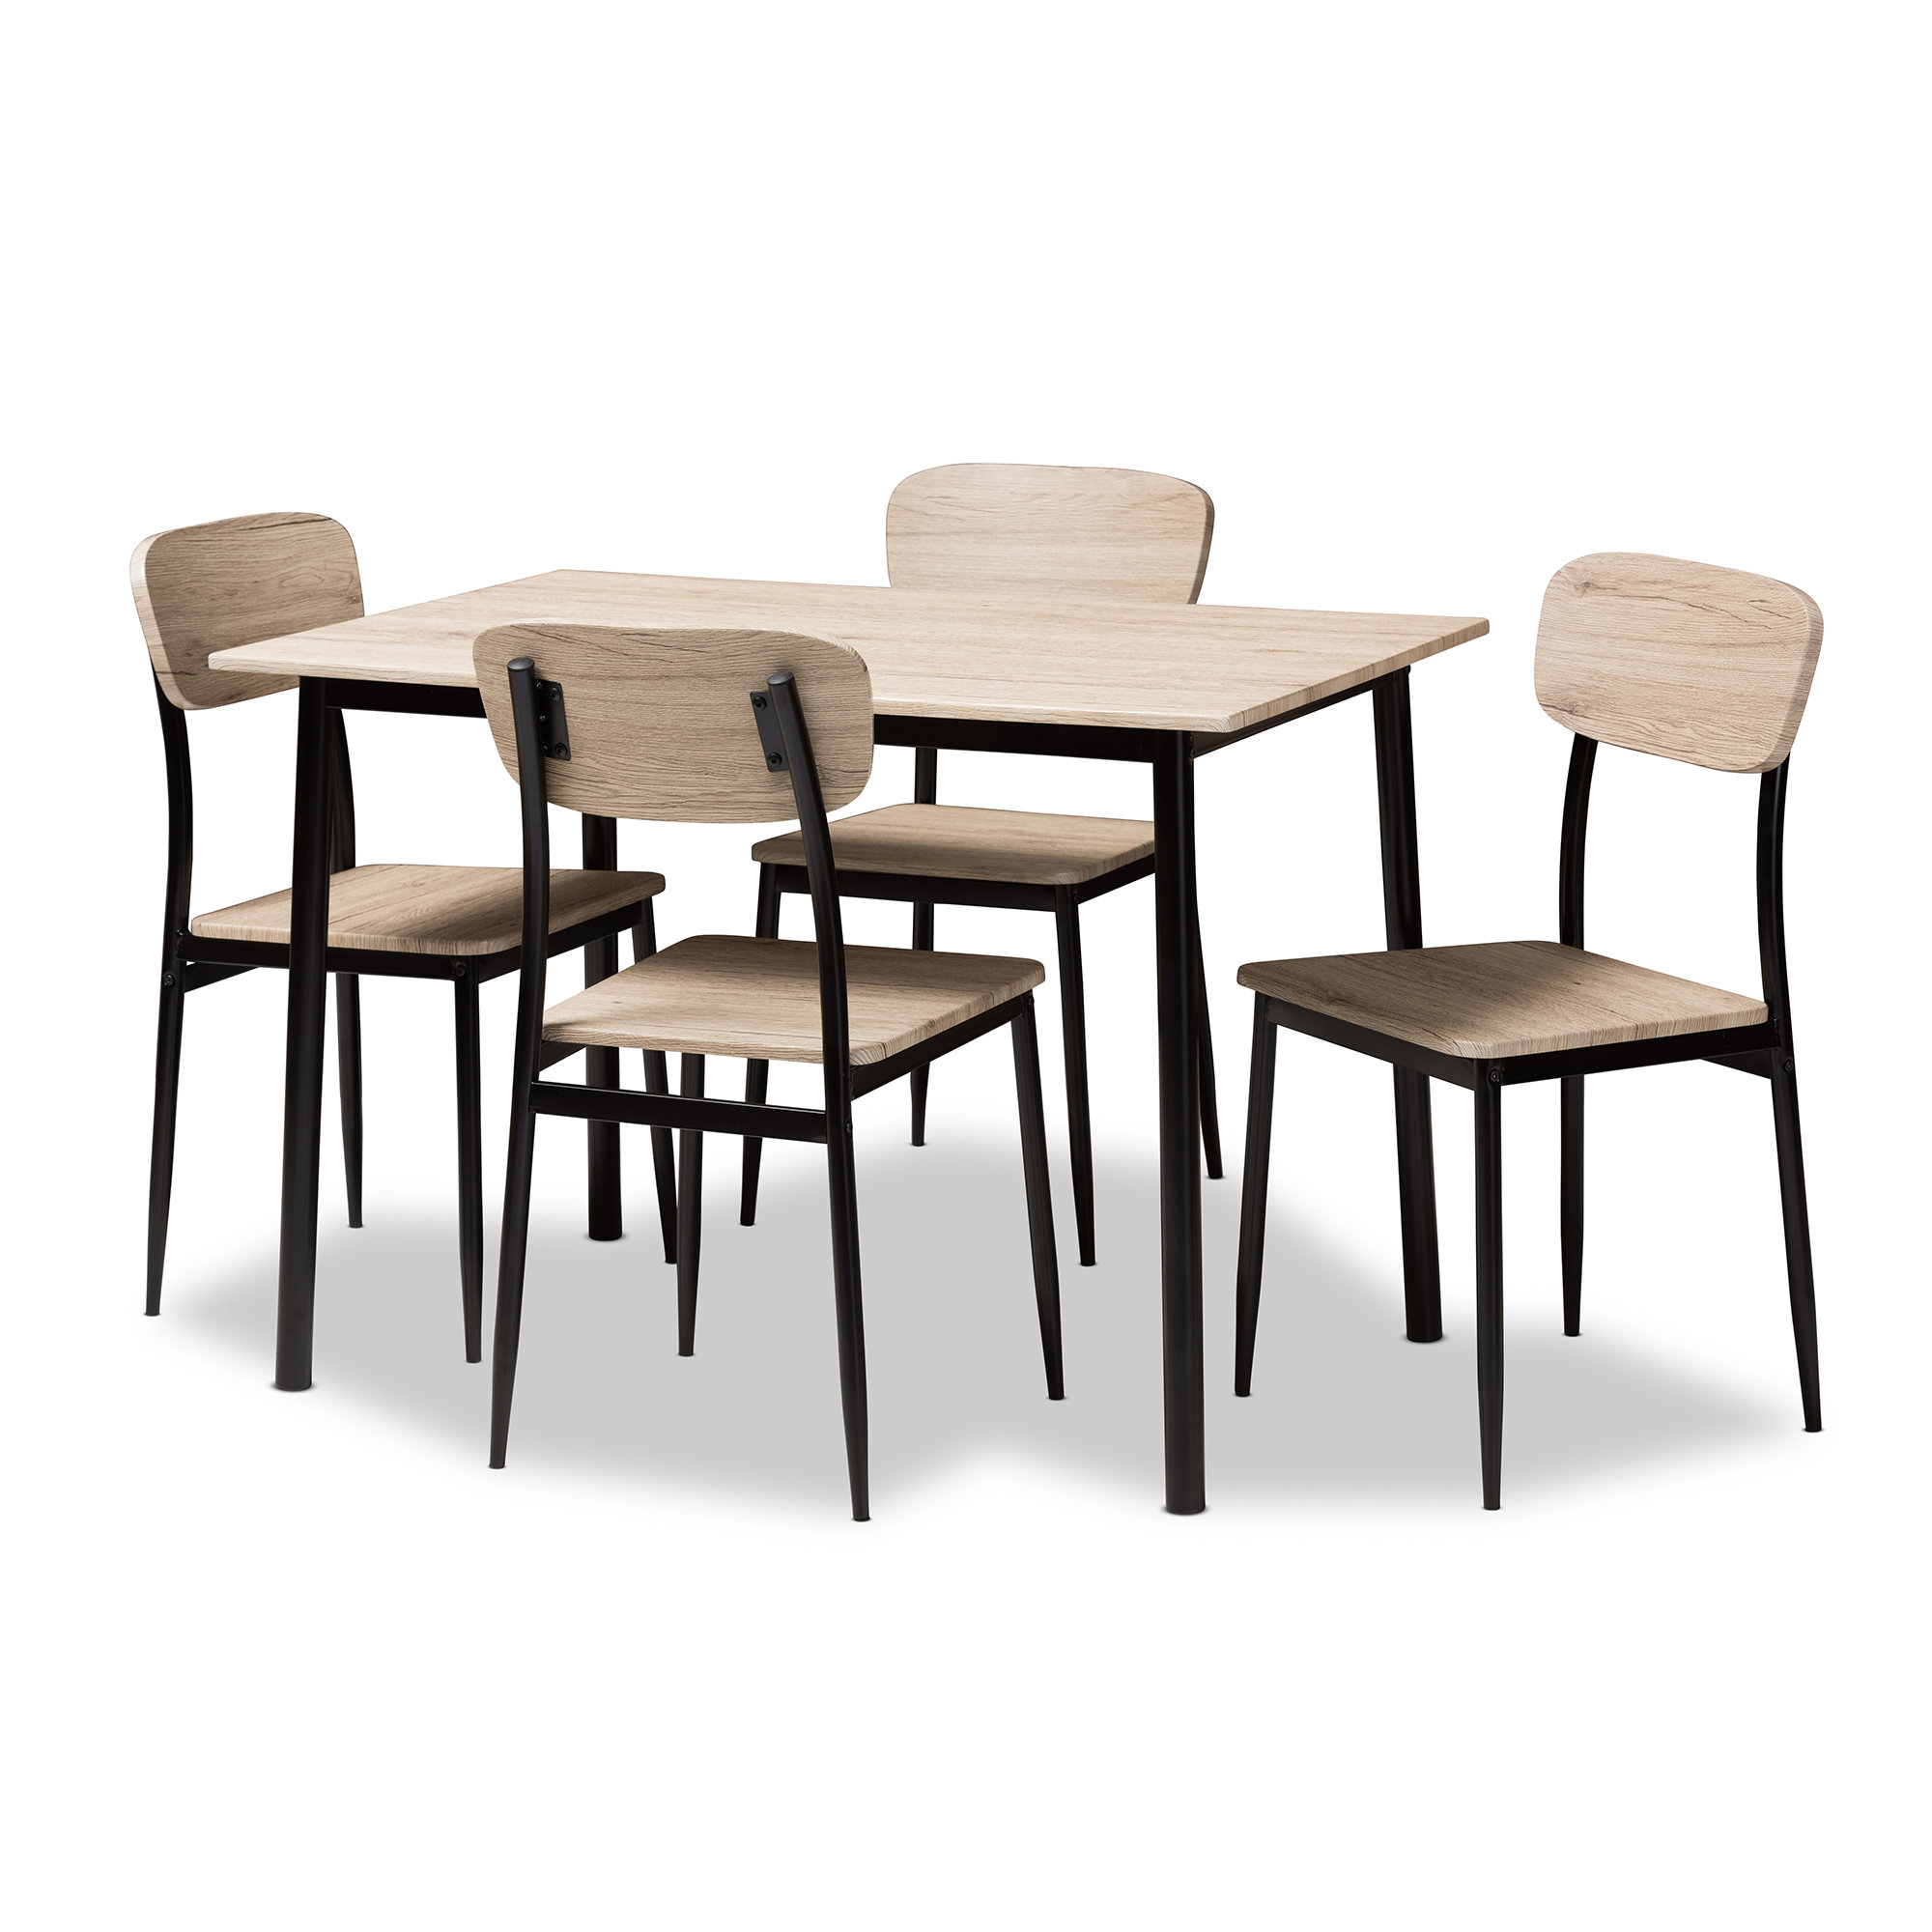 Millwood Pines Wiggs 5 Piece Dining Set & Reviews | Wayfair Inside 2018 Tejeda 5 Piece Dining Sets (View 9 of 20)